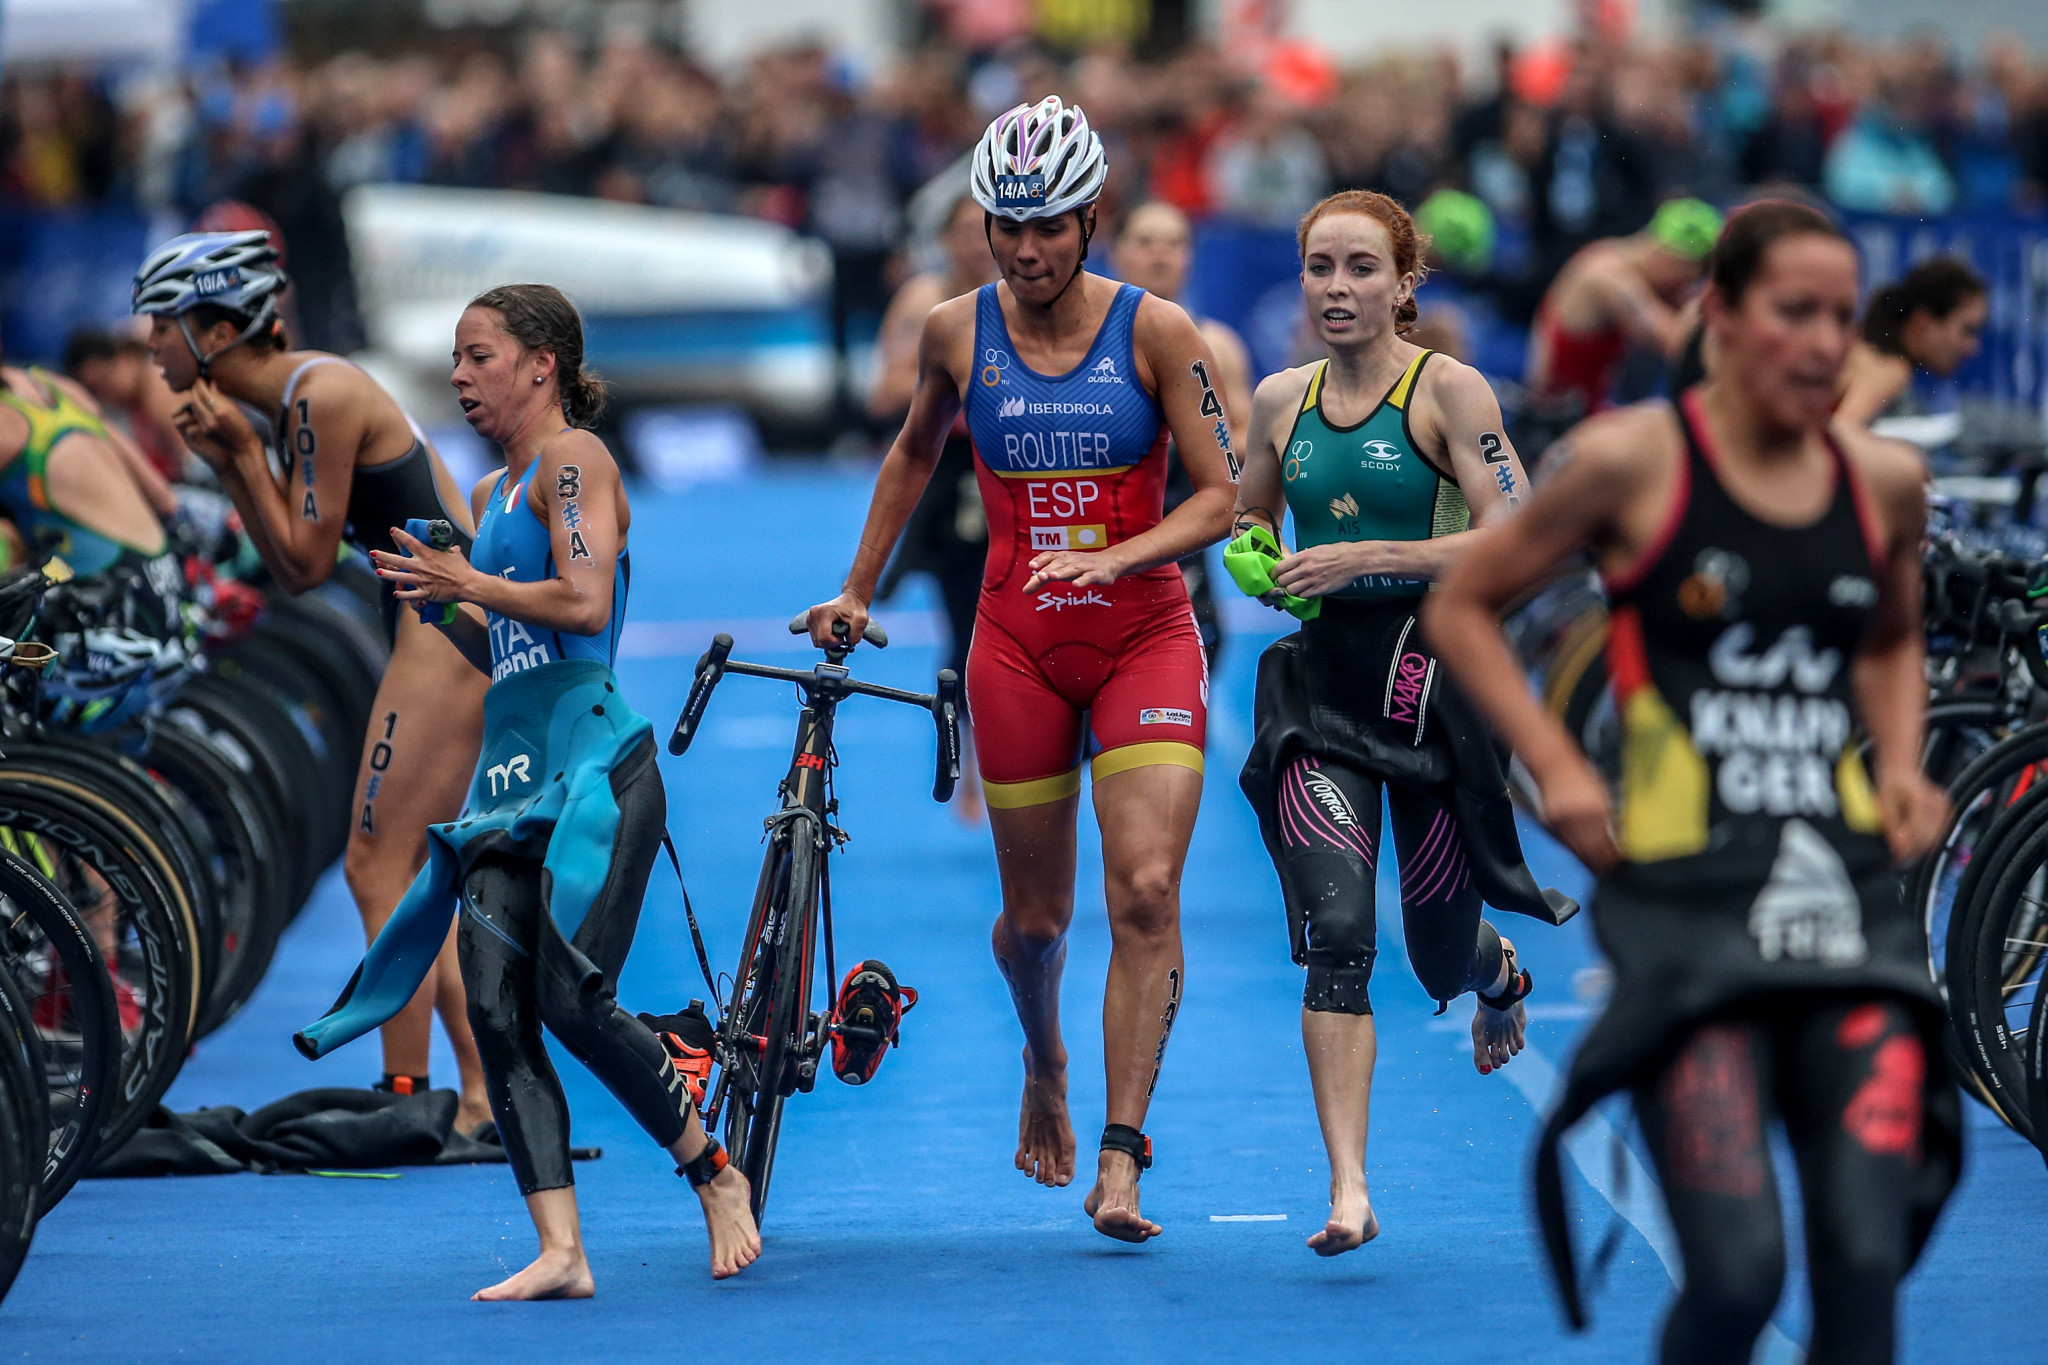 Mixed relay triathlon will debut on the Olympic stage at Tokyo 2020 ©Getty Images